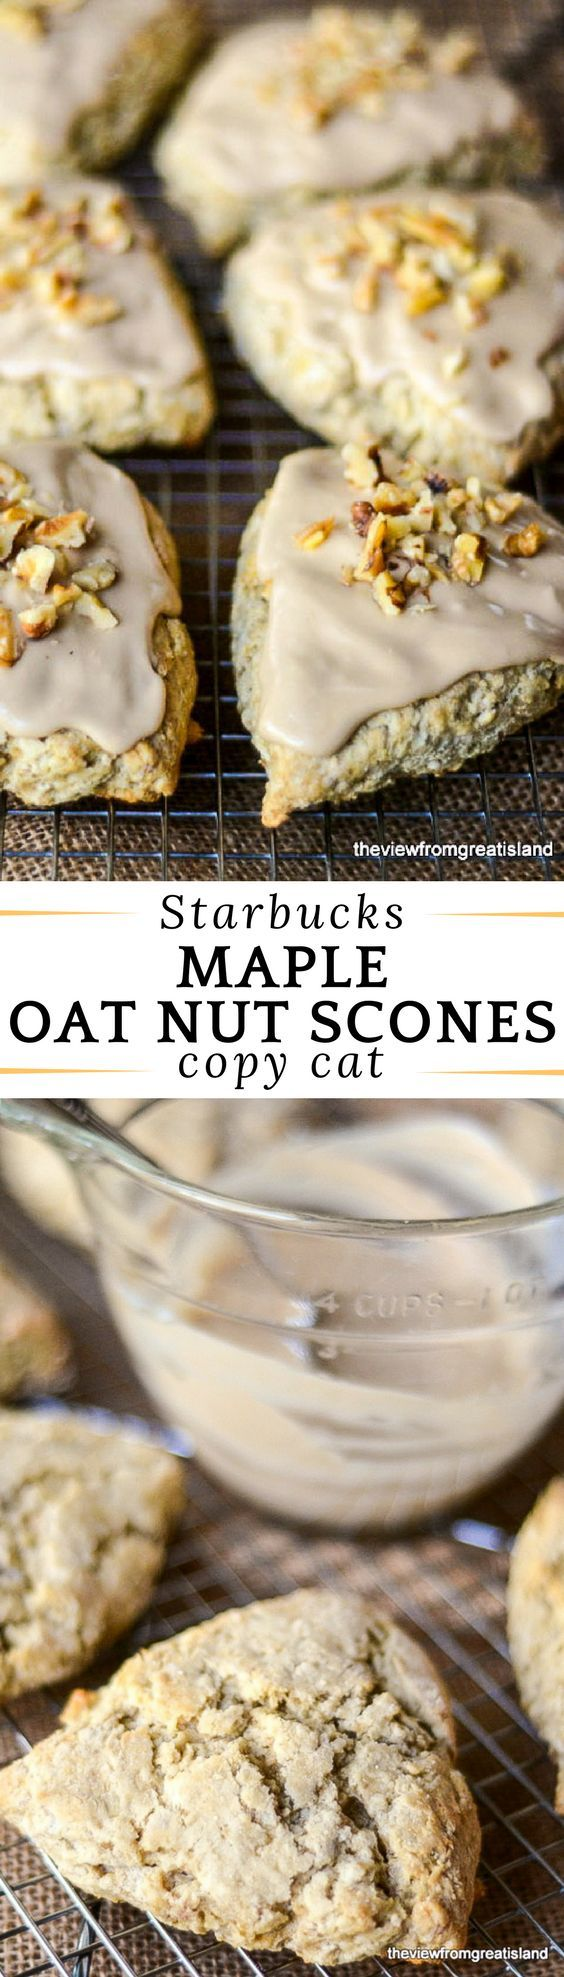 These Starbucks Copy Cat Maple Oat Nut Scones are a personal favorite of mine, they have the perfect moist, flaky texture, and a wonderfully warm, rich maple walnut flavor. #scones #copycatrecipe #starbucks #starbucksrecipe #copycatstarbucks #pastry #breakfast #brunch #fall #maplescones #walnutscones